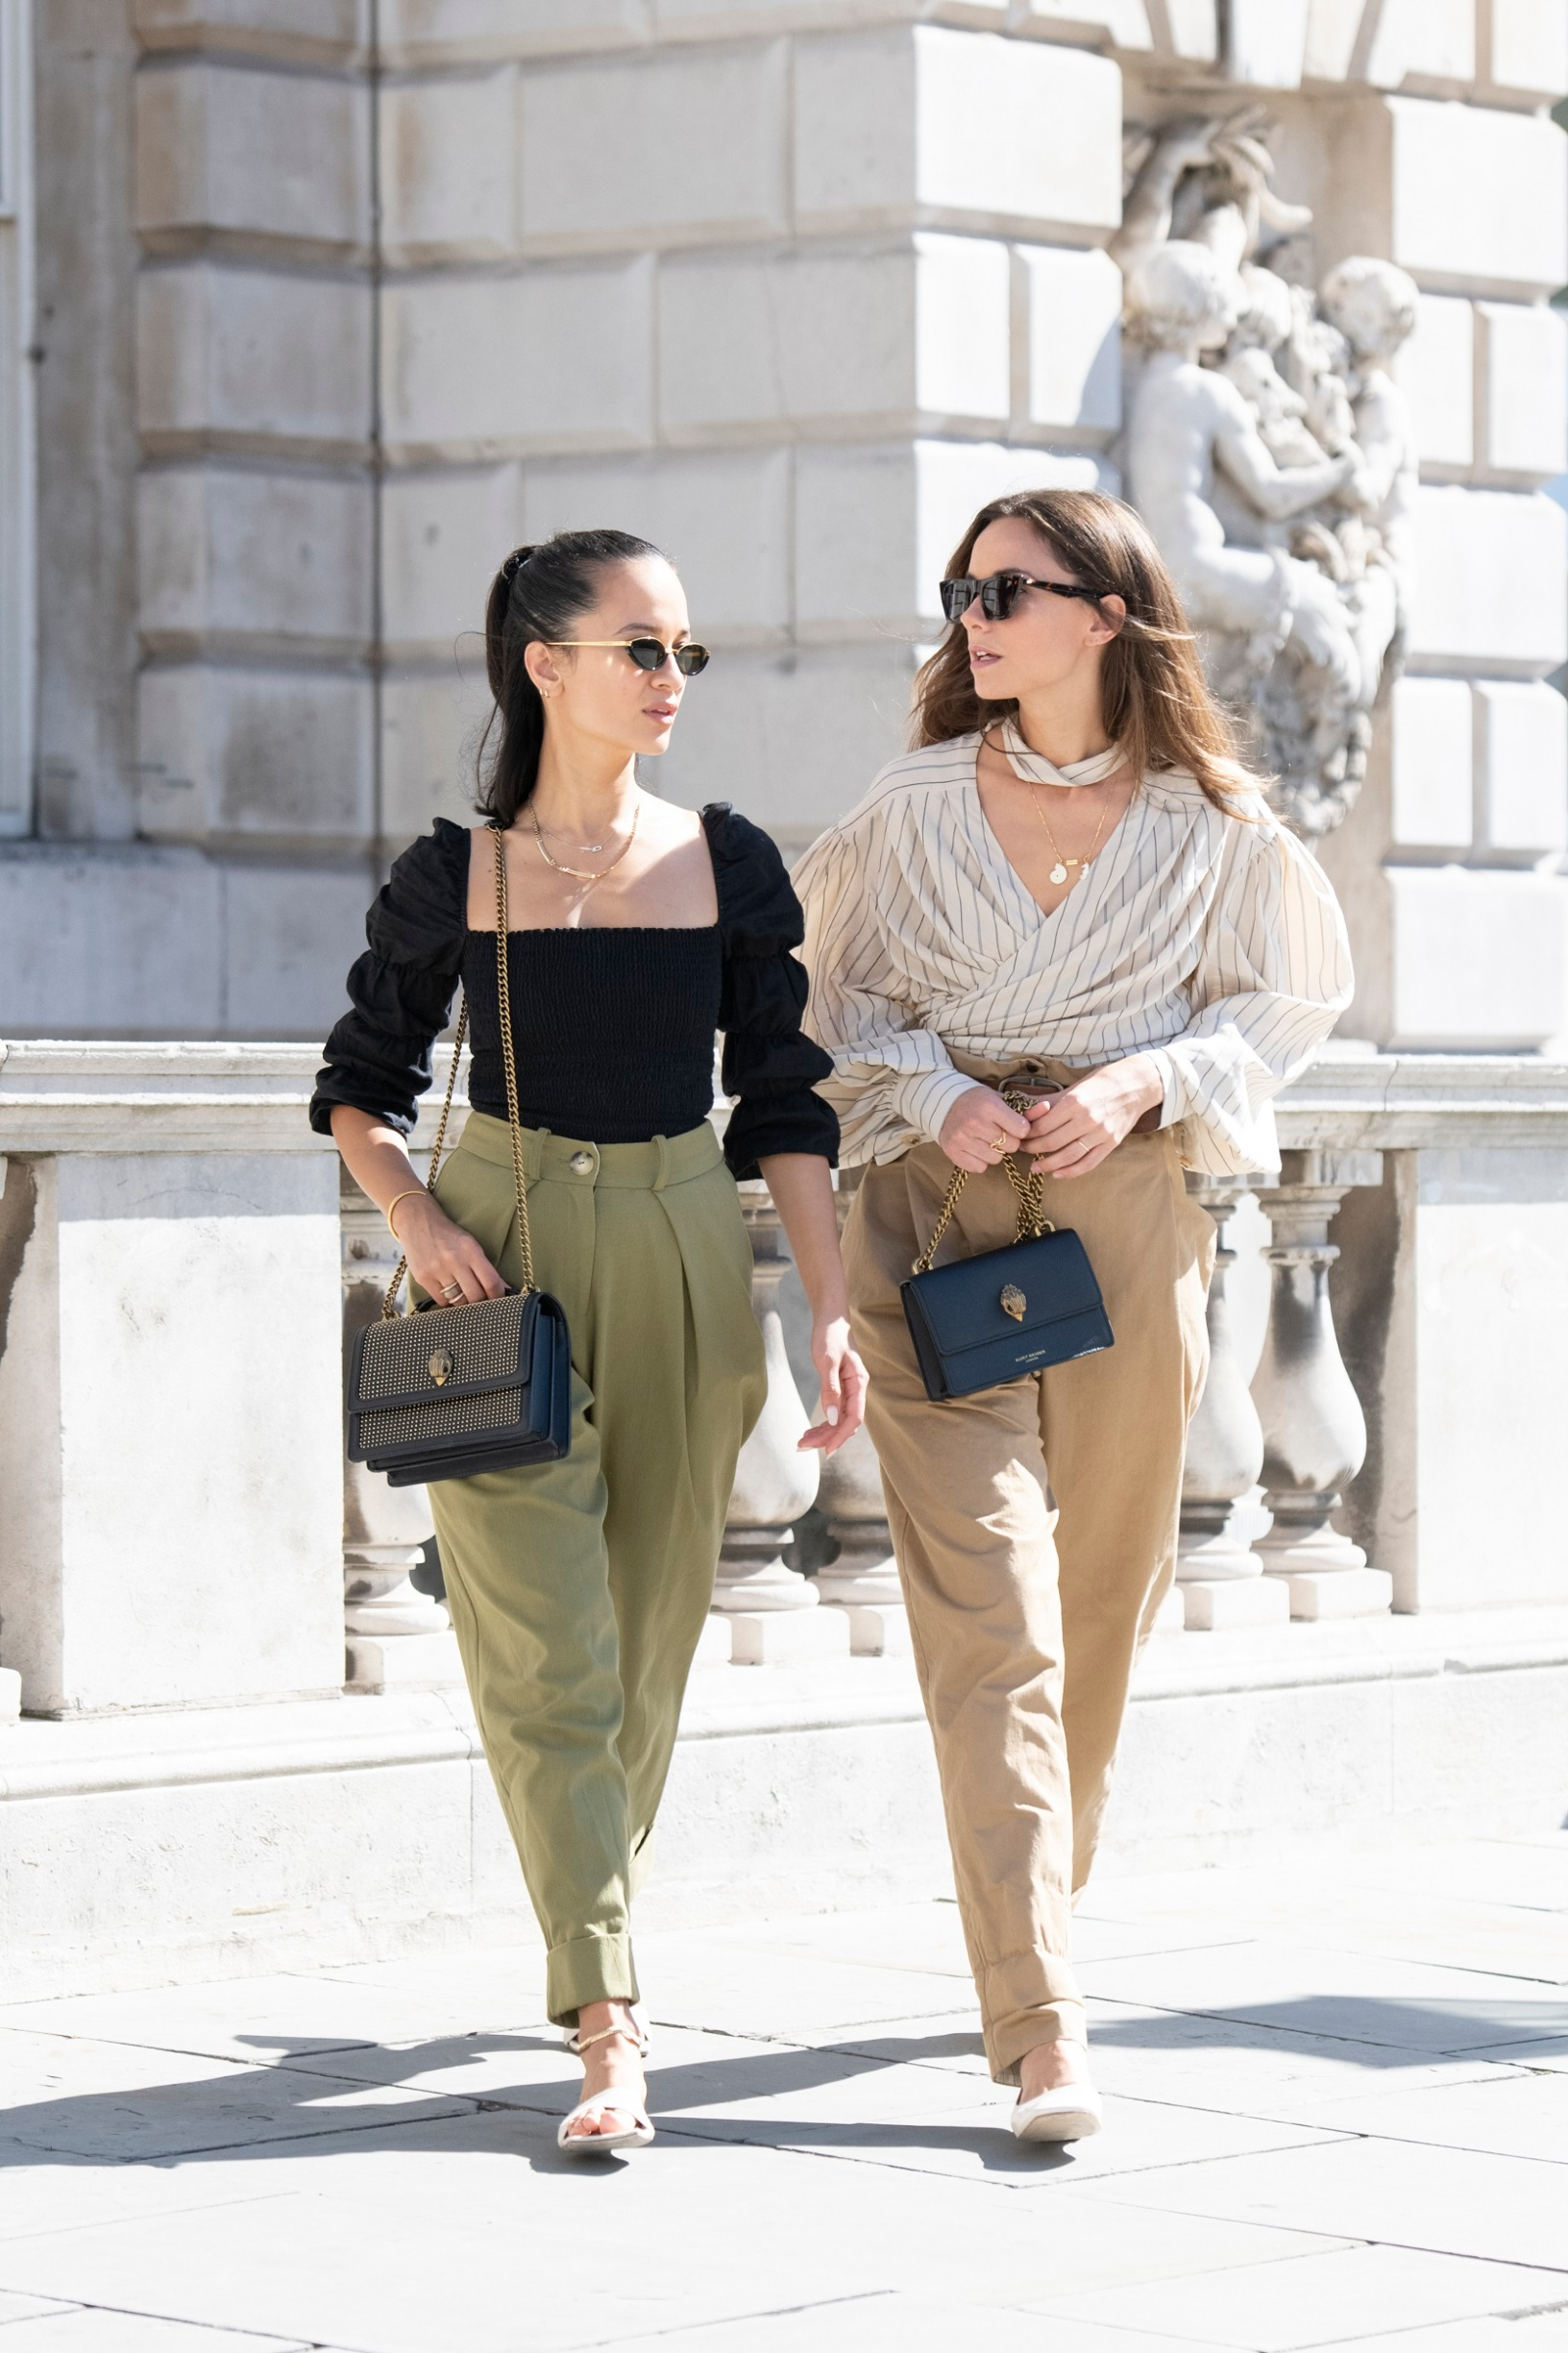 LONDON, ENGLAND - SEPTEMBER 13: Anna Rosa Vitiello wears a Kurt Geiger bag, Reformation top, Maxine shoes, Topshop trousers and Linda Farrow sunglasses with Florrie Thomas wearing Aeyde shoes, Kurt Geiger bag, Rag and Bone sunglasses, Flow belt, trousers and shirt on September 13, 2019 in London, England. (Photo by Kirstin Sinclair/Getty Images for Kurt Geiger)